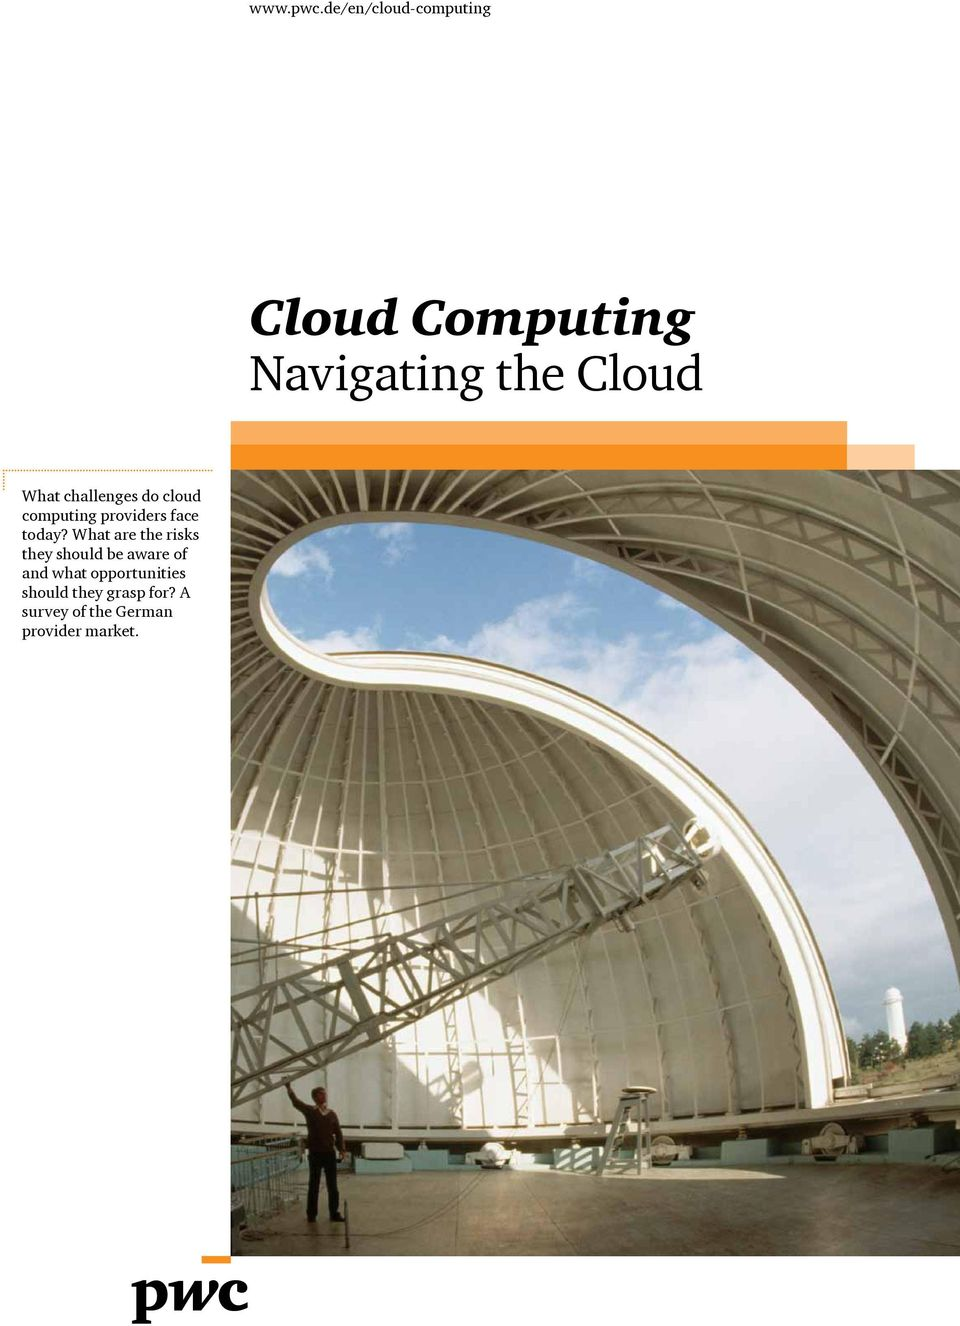 What challenges do cloud computing providers face today?